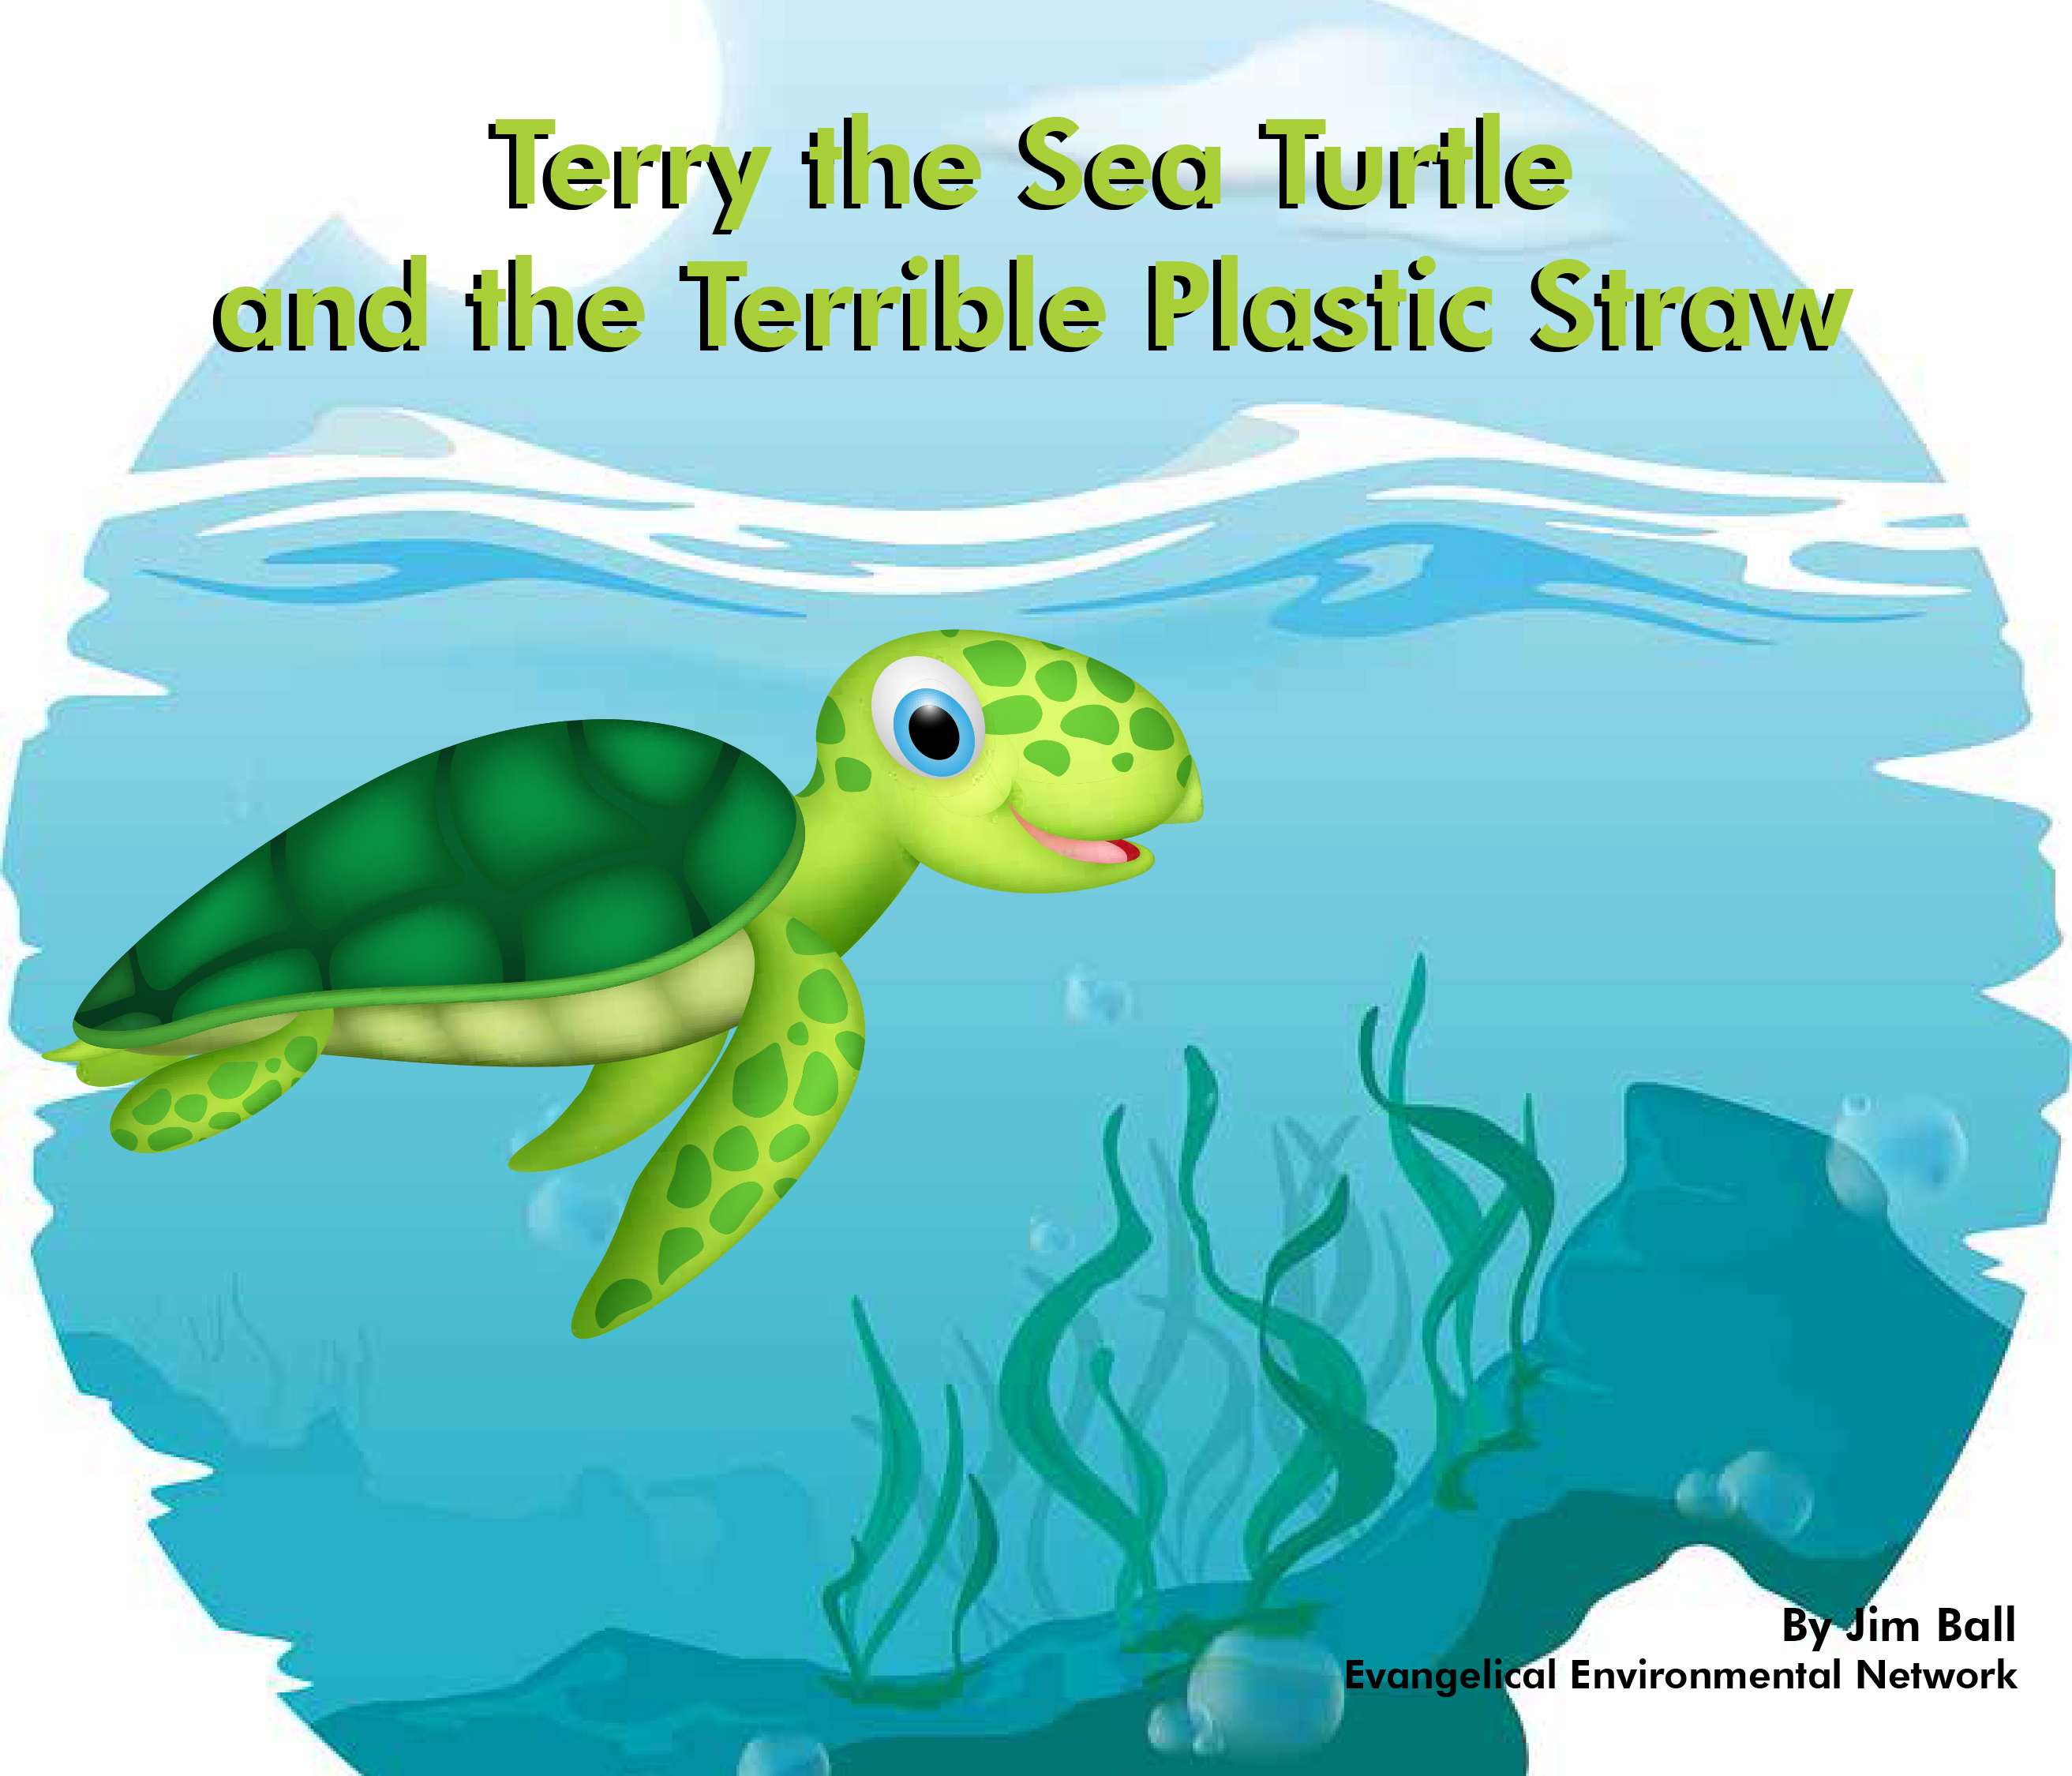 Terry the Sea Turtle